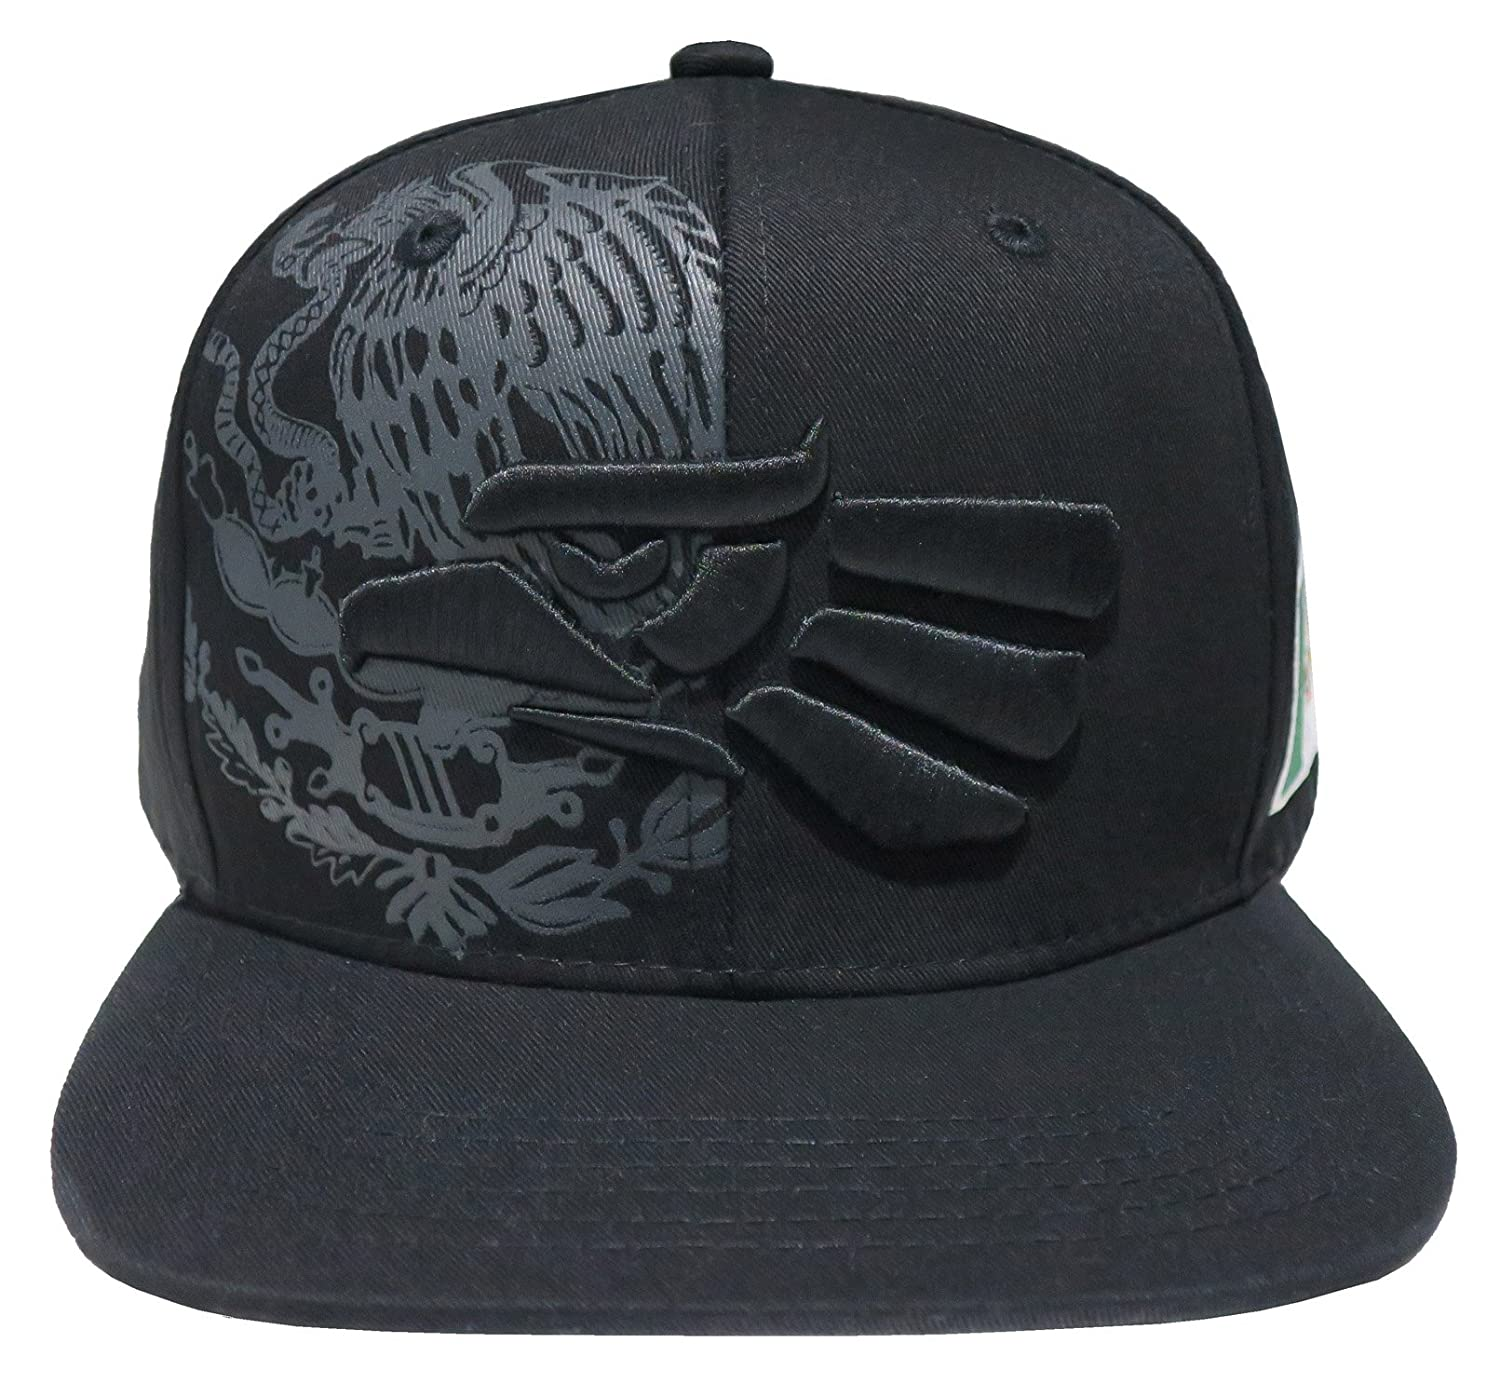 Leader of Generation Hecho En Mexico Mexican Eagle Embroidered Flatbill  Snapback (Black Black MEX04) at Amazon Men s Clothing store  3de07364658